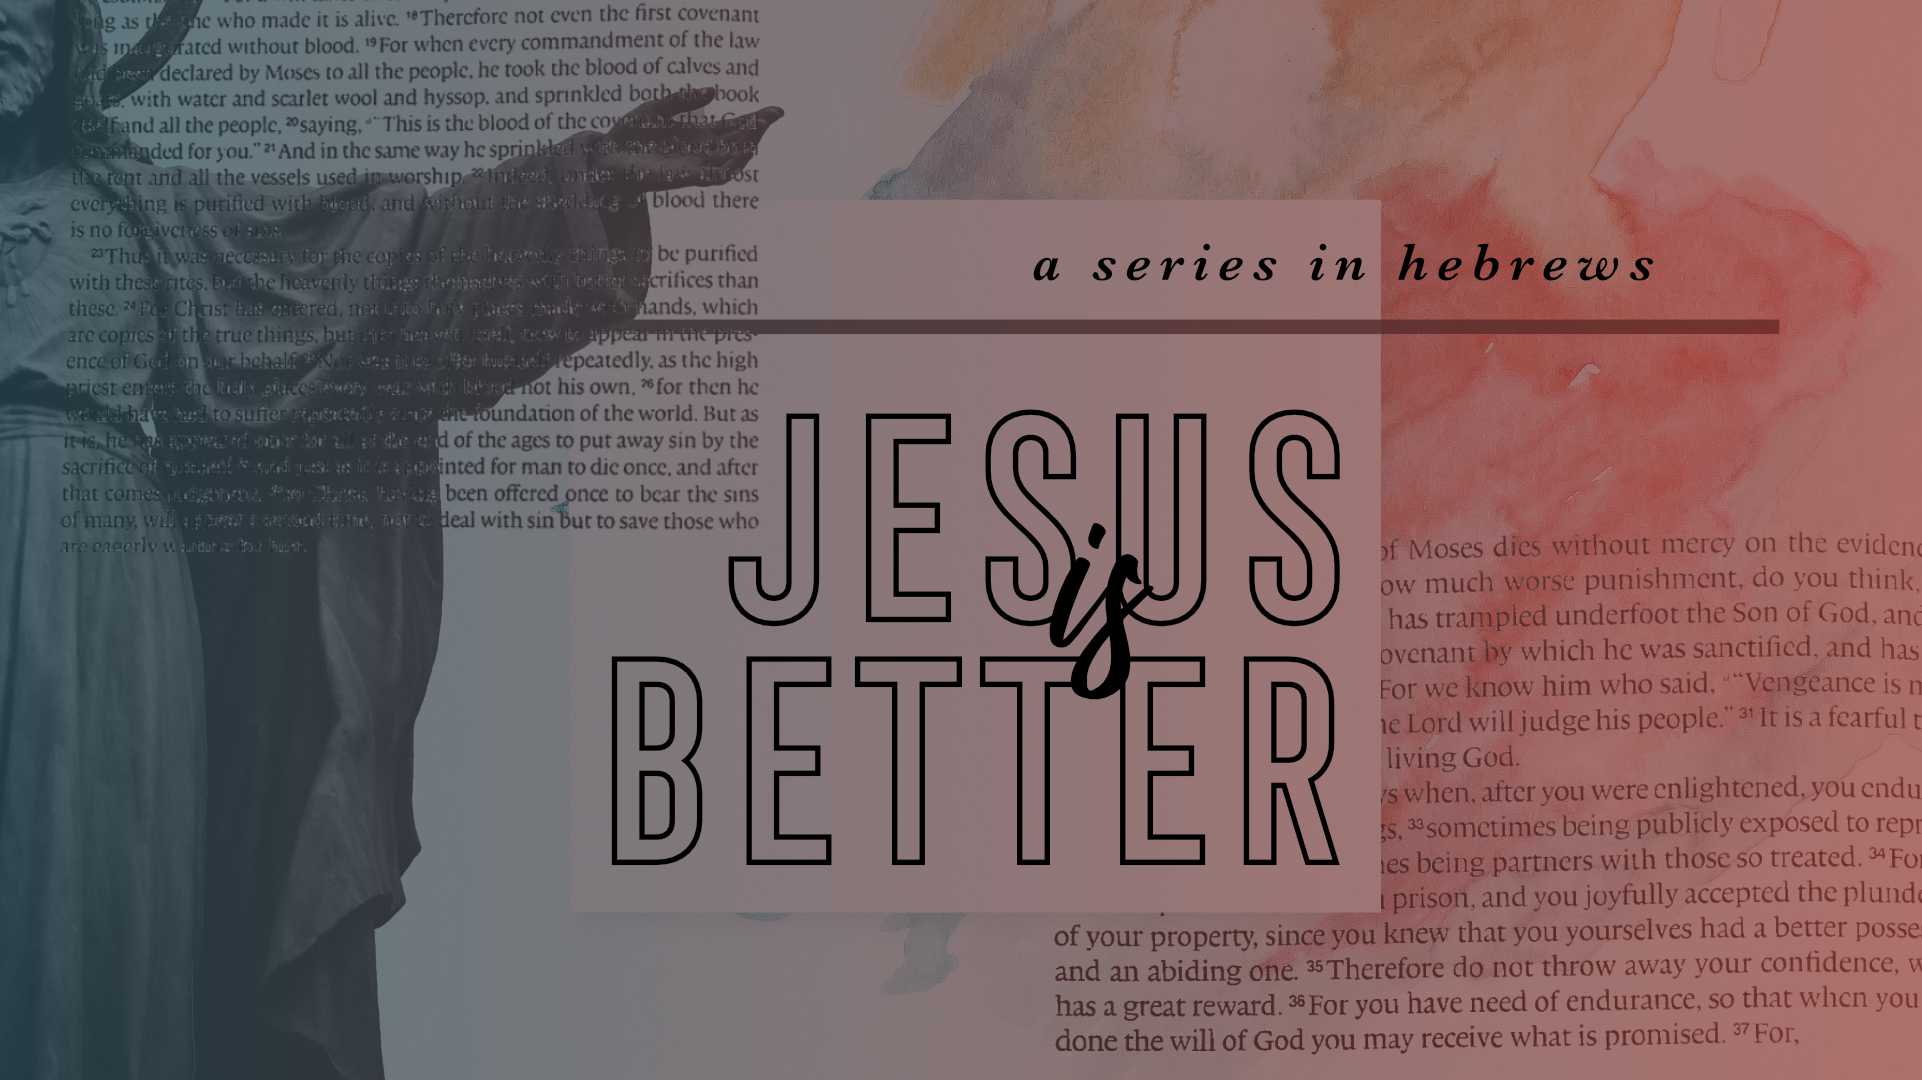 Jesus is Better: Better in Every Way